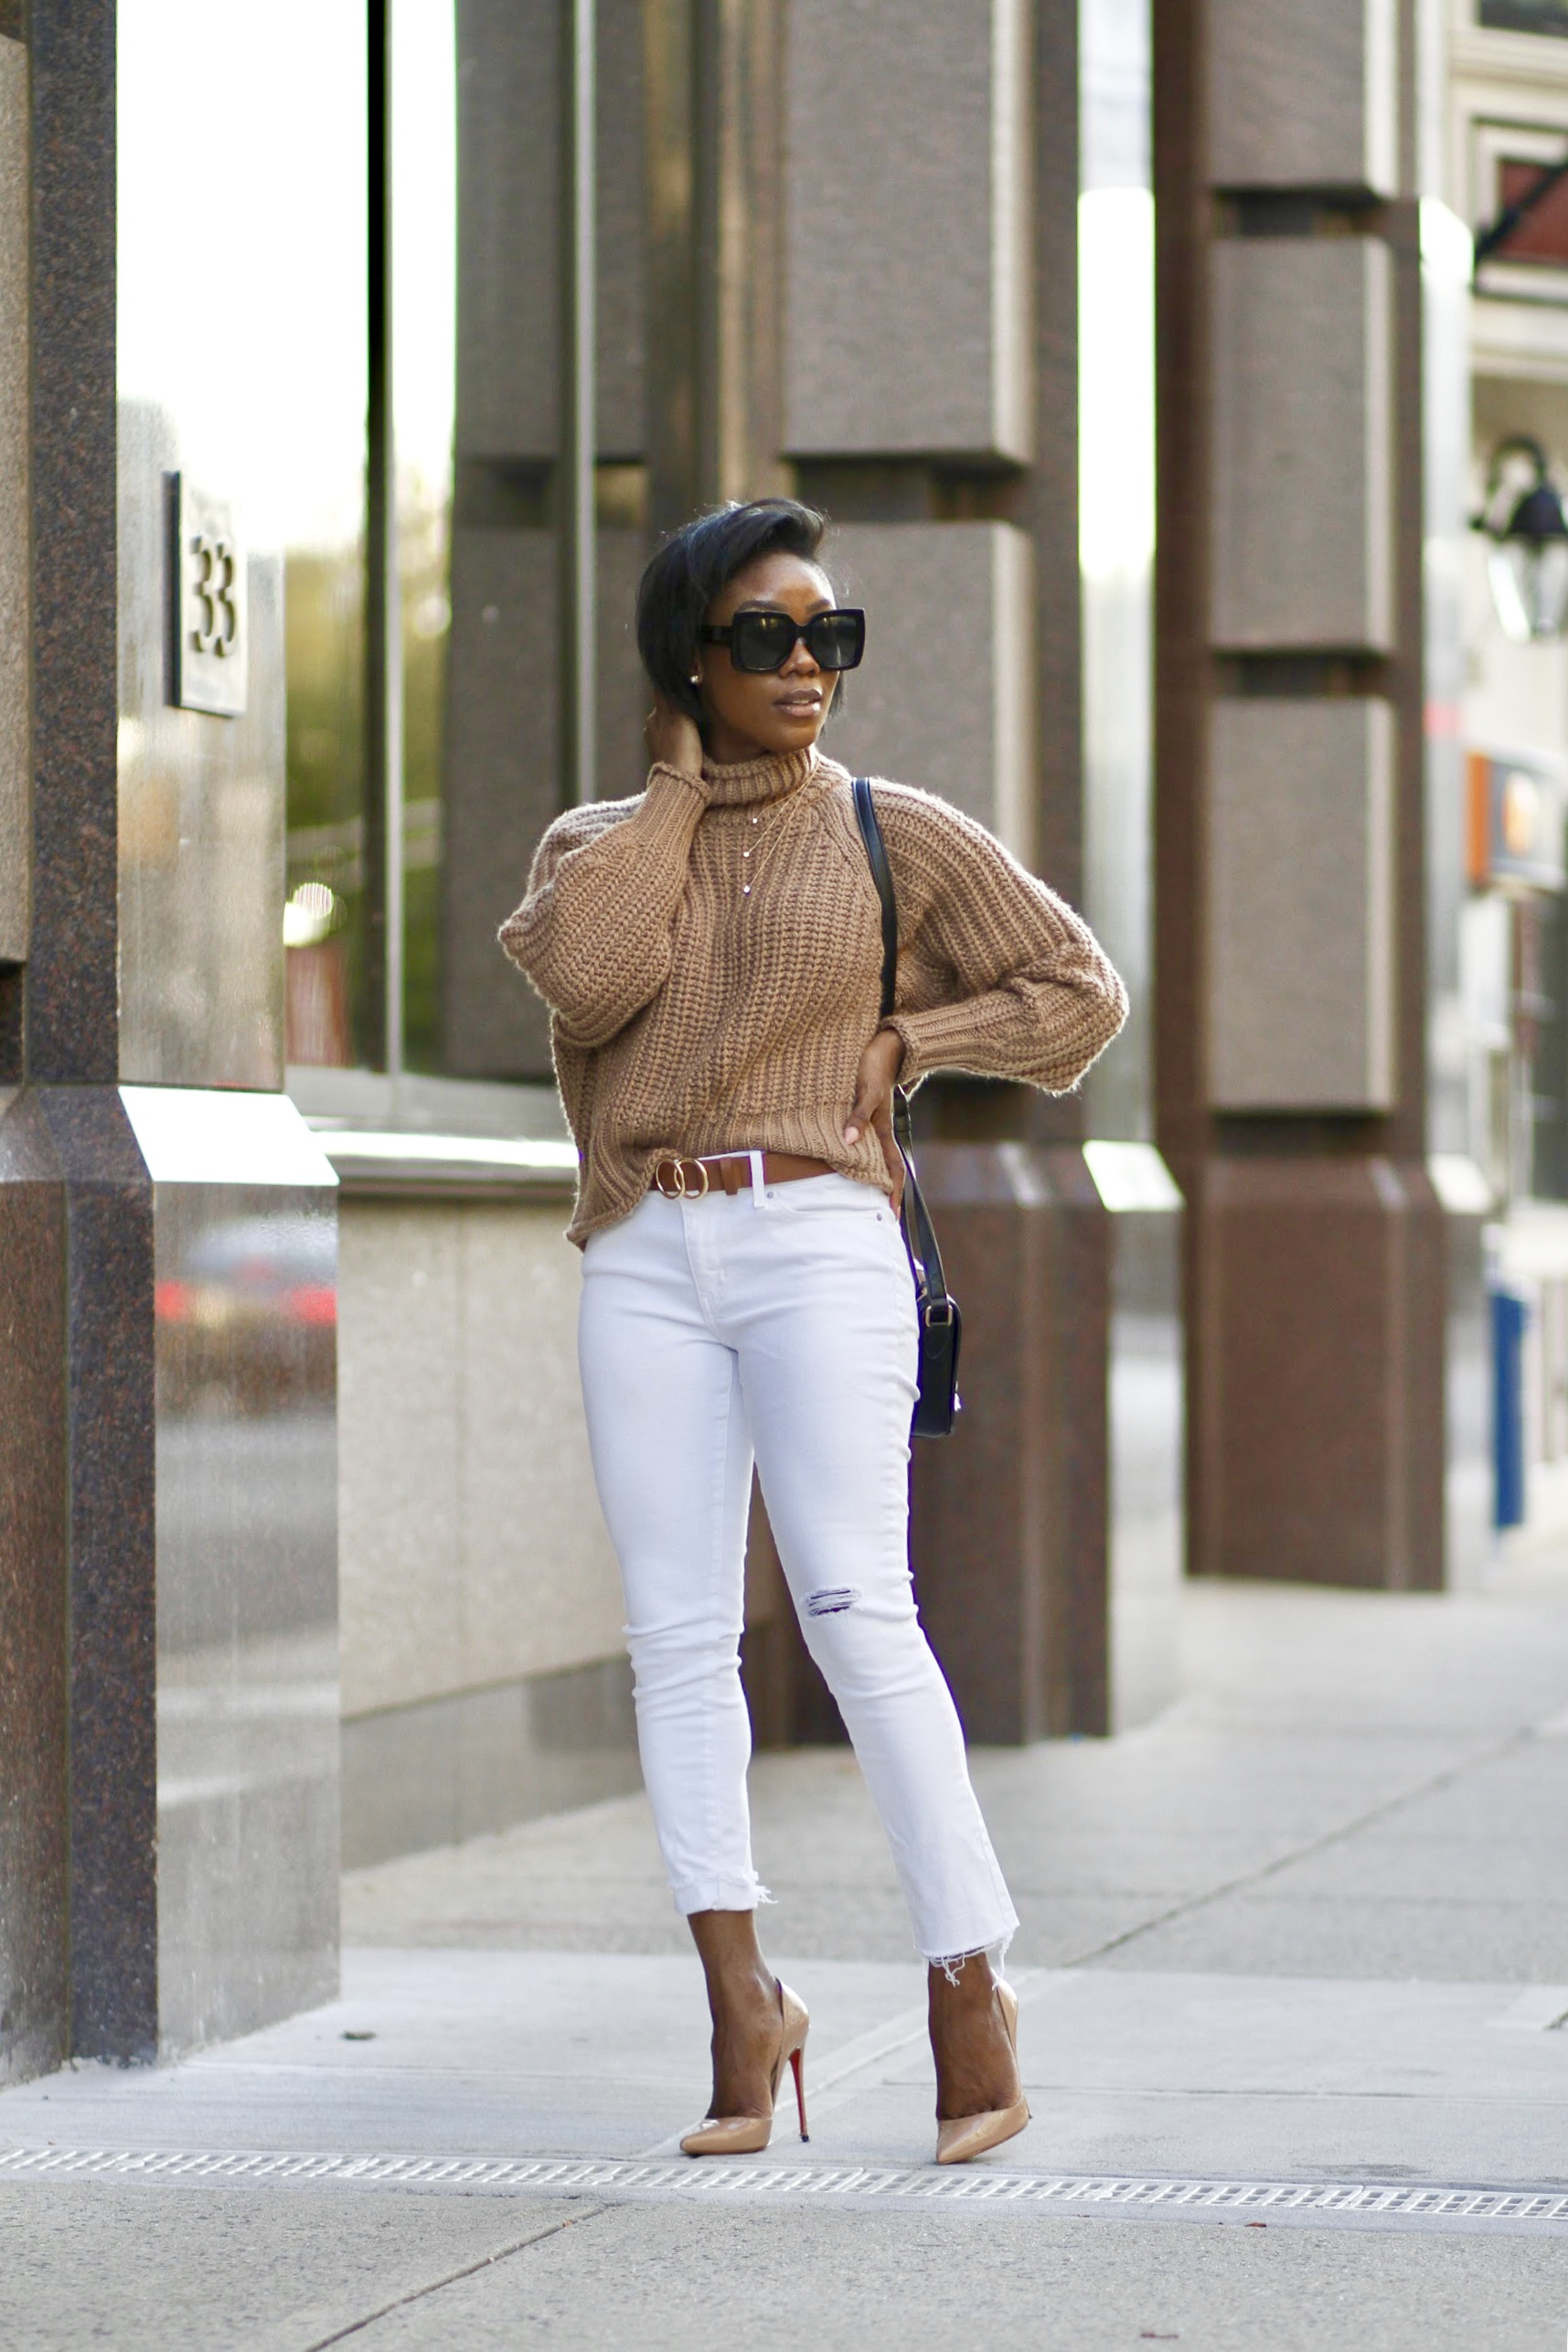 how to wear white jeans after labor day. 4 great ways to stye wear winter whie.